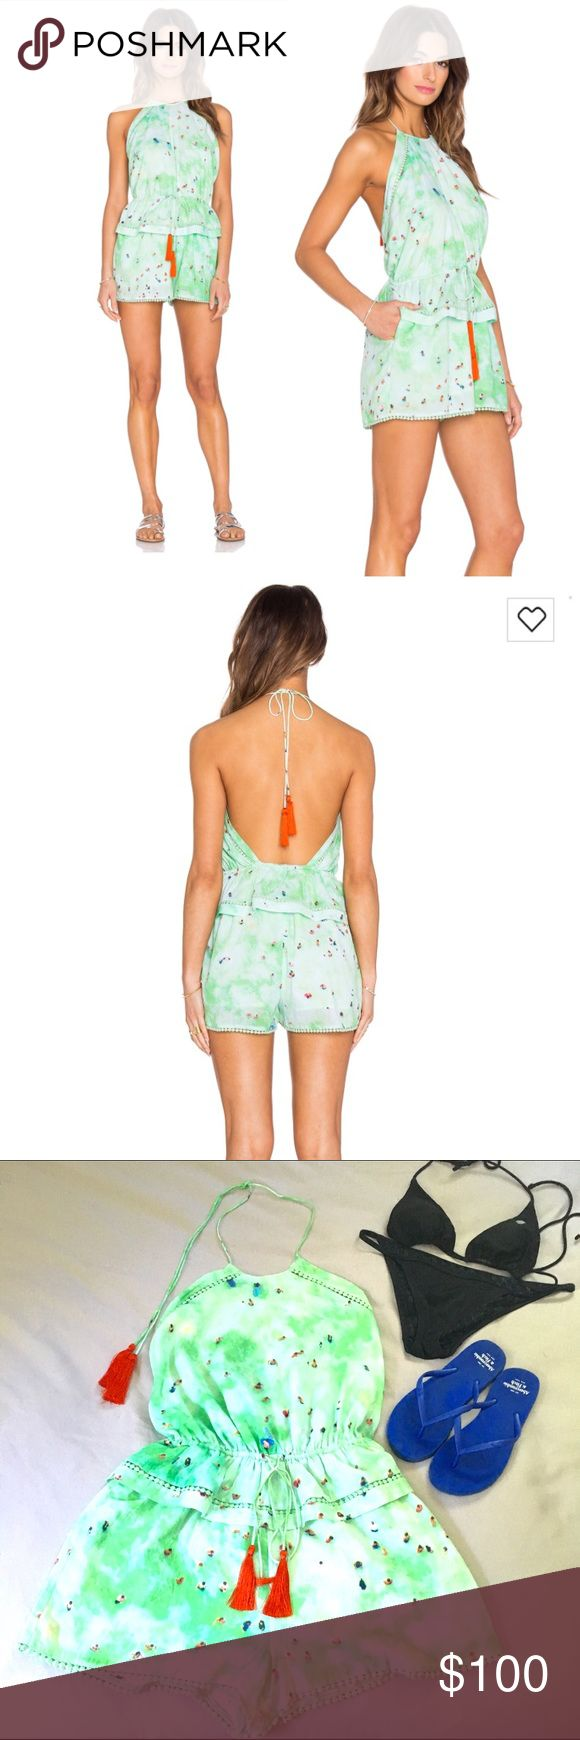 """//PRICE DROP// Basta Surf Gray Malin Mako Romper Basta Surf cover up romper from the Gray Malin collection, Mako In Wave print. Green with red tassels. Size Medium, brand new condition with tags. Described as luxury swimwear and """"beachwear that are wearable pieces of art"""".  100% cotton. Can be worn as a typical romper or over a bathing suit. Size medium, but can accommodate a range with elastic waist. ✨Reduced from $100 Basta Surf Swim Coverups"""